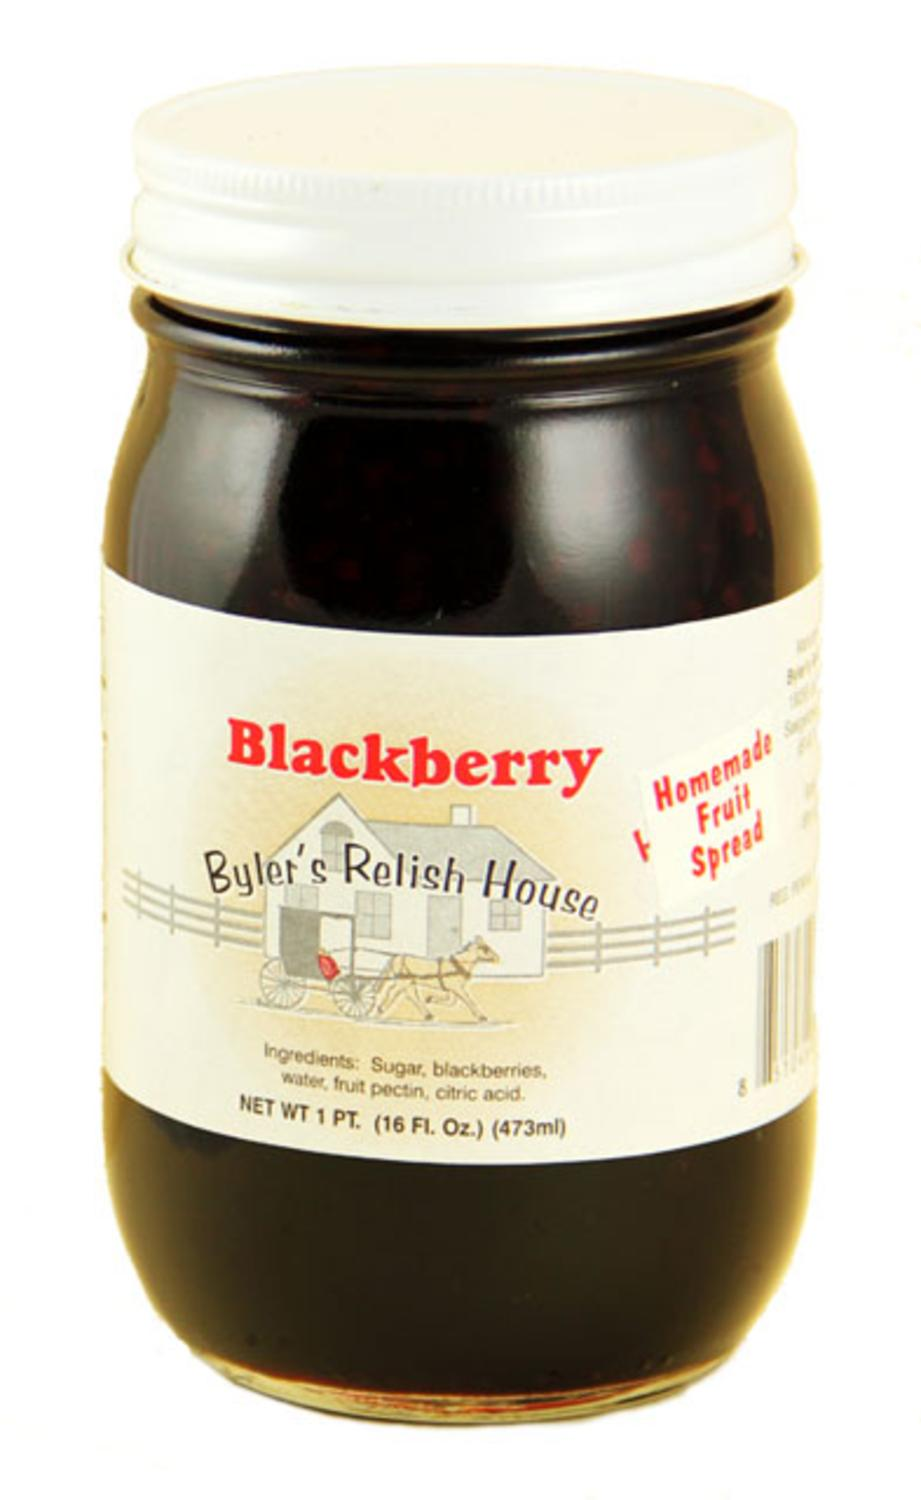 Byler's Relish House Homemade Amish Country Blackberry Jam Fruit Spread 16 oz. by Byler's Relish House